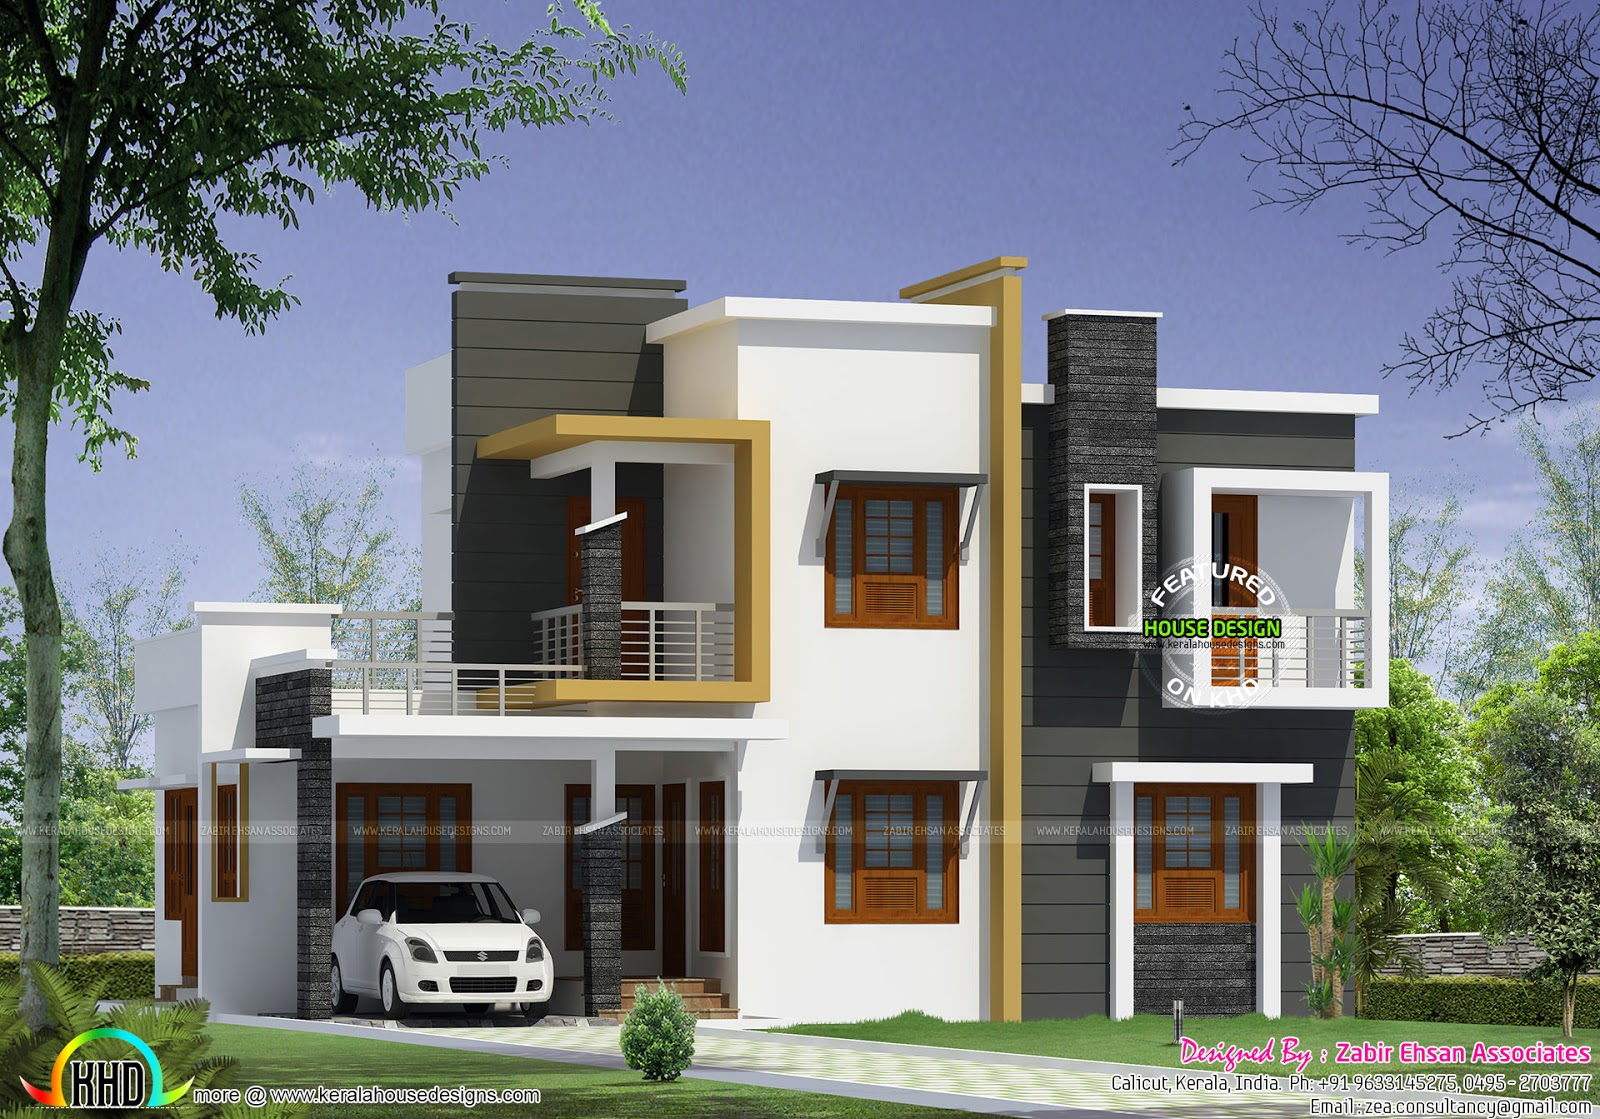 home designs pictures. Box type modern house plan  Kerala home design and floor plans